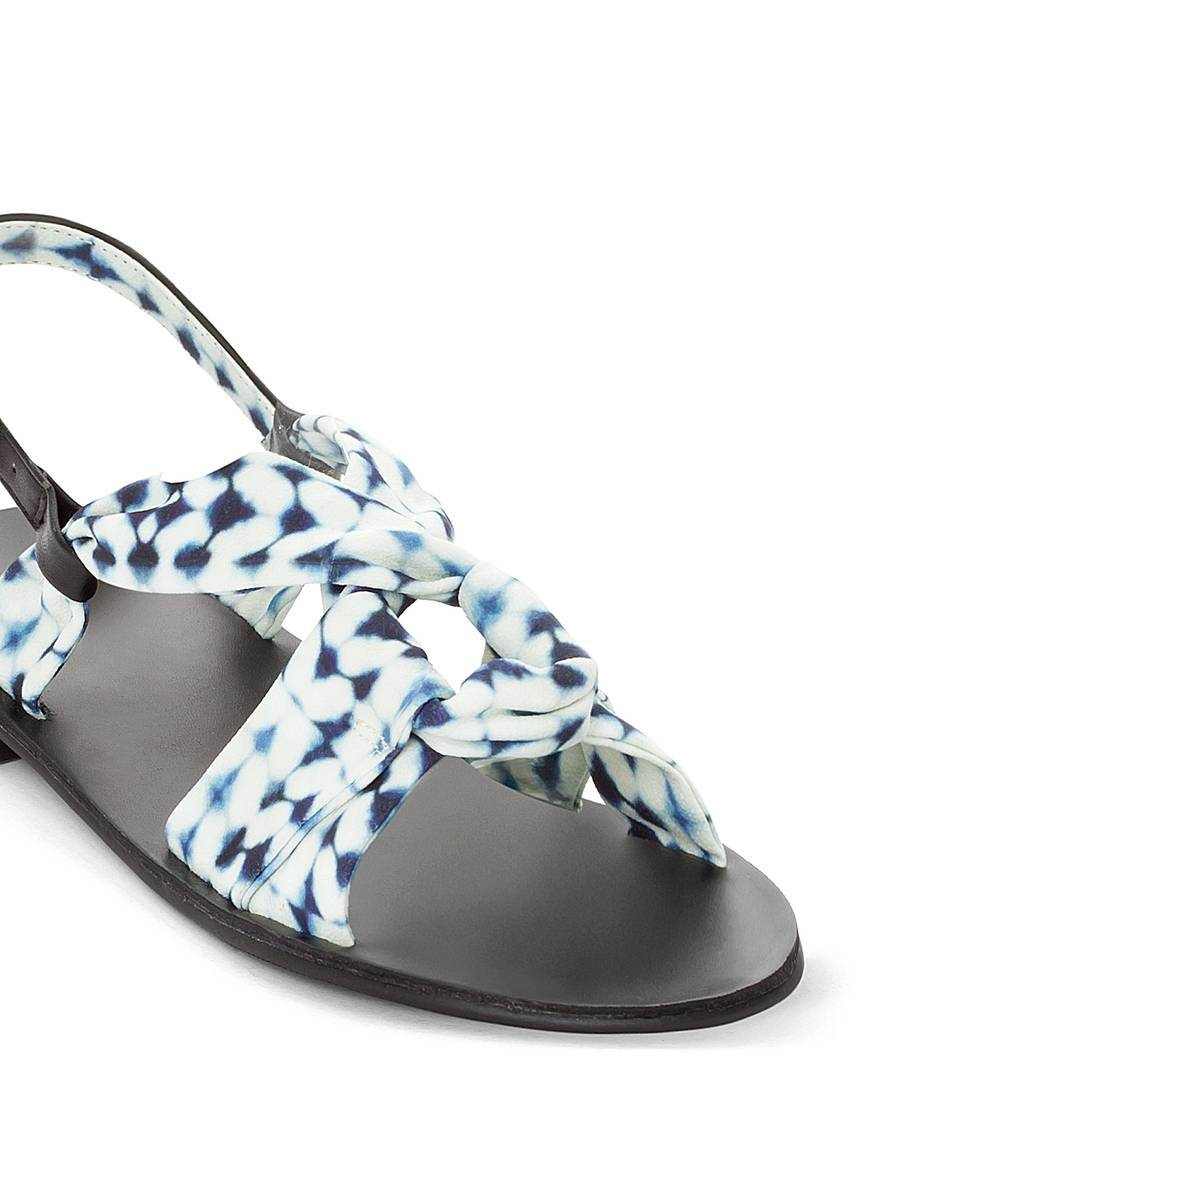 La Redoute Collections Sandalias con lacitos estampados azul